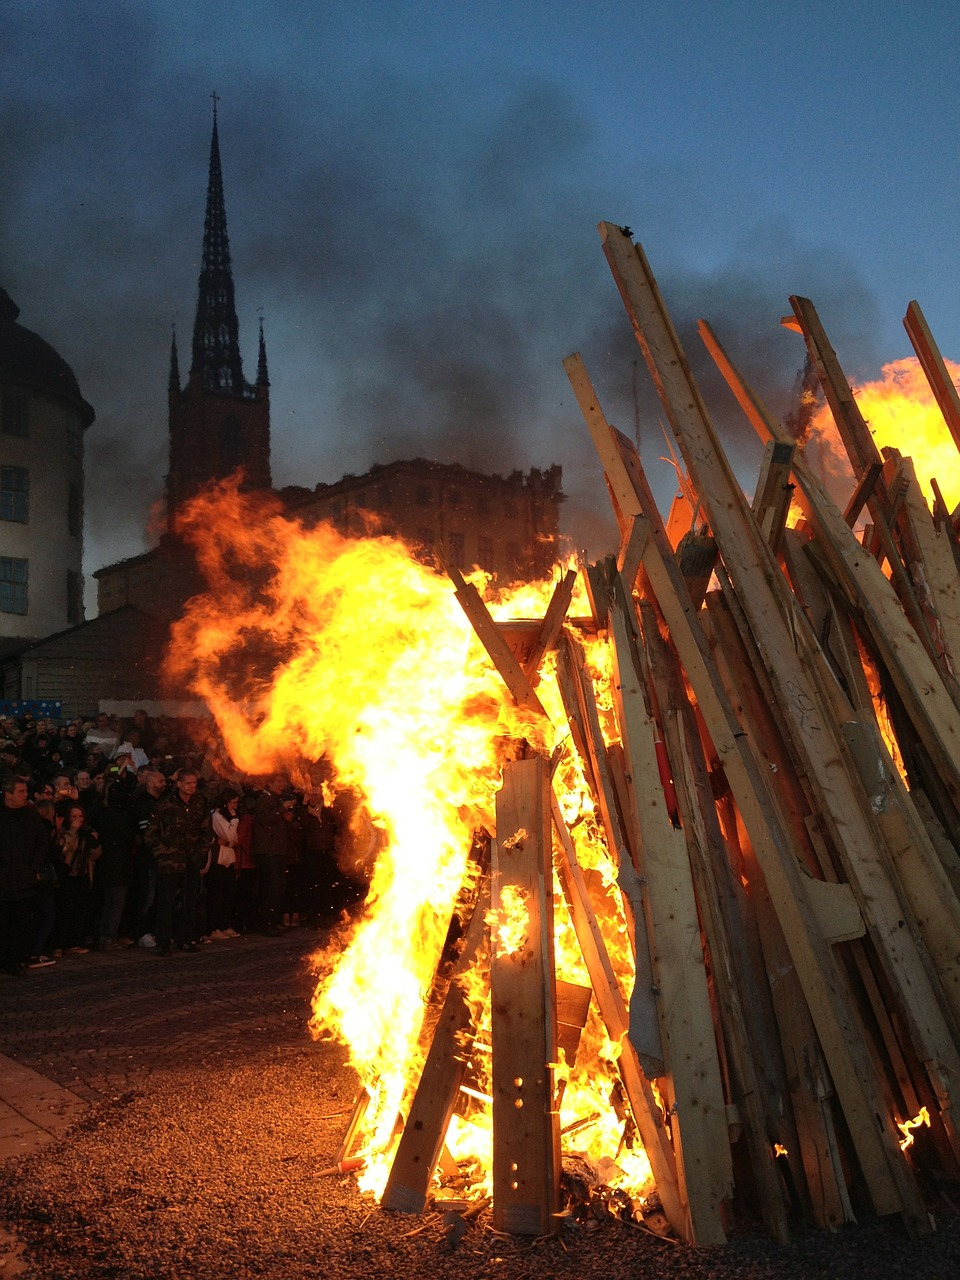 valborg bonfire riddarholmen free photo